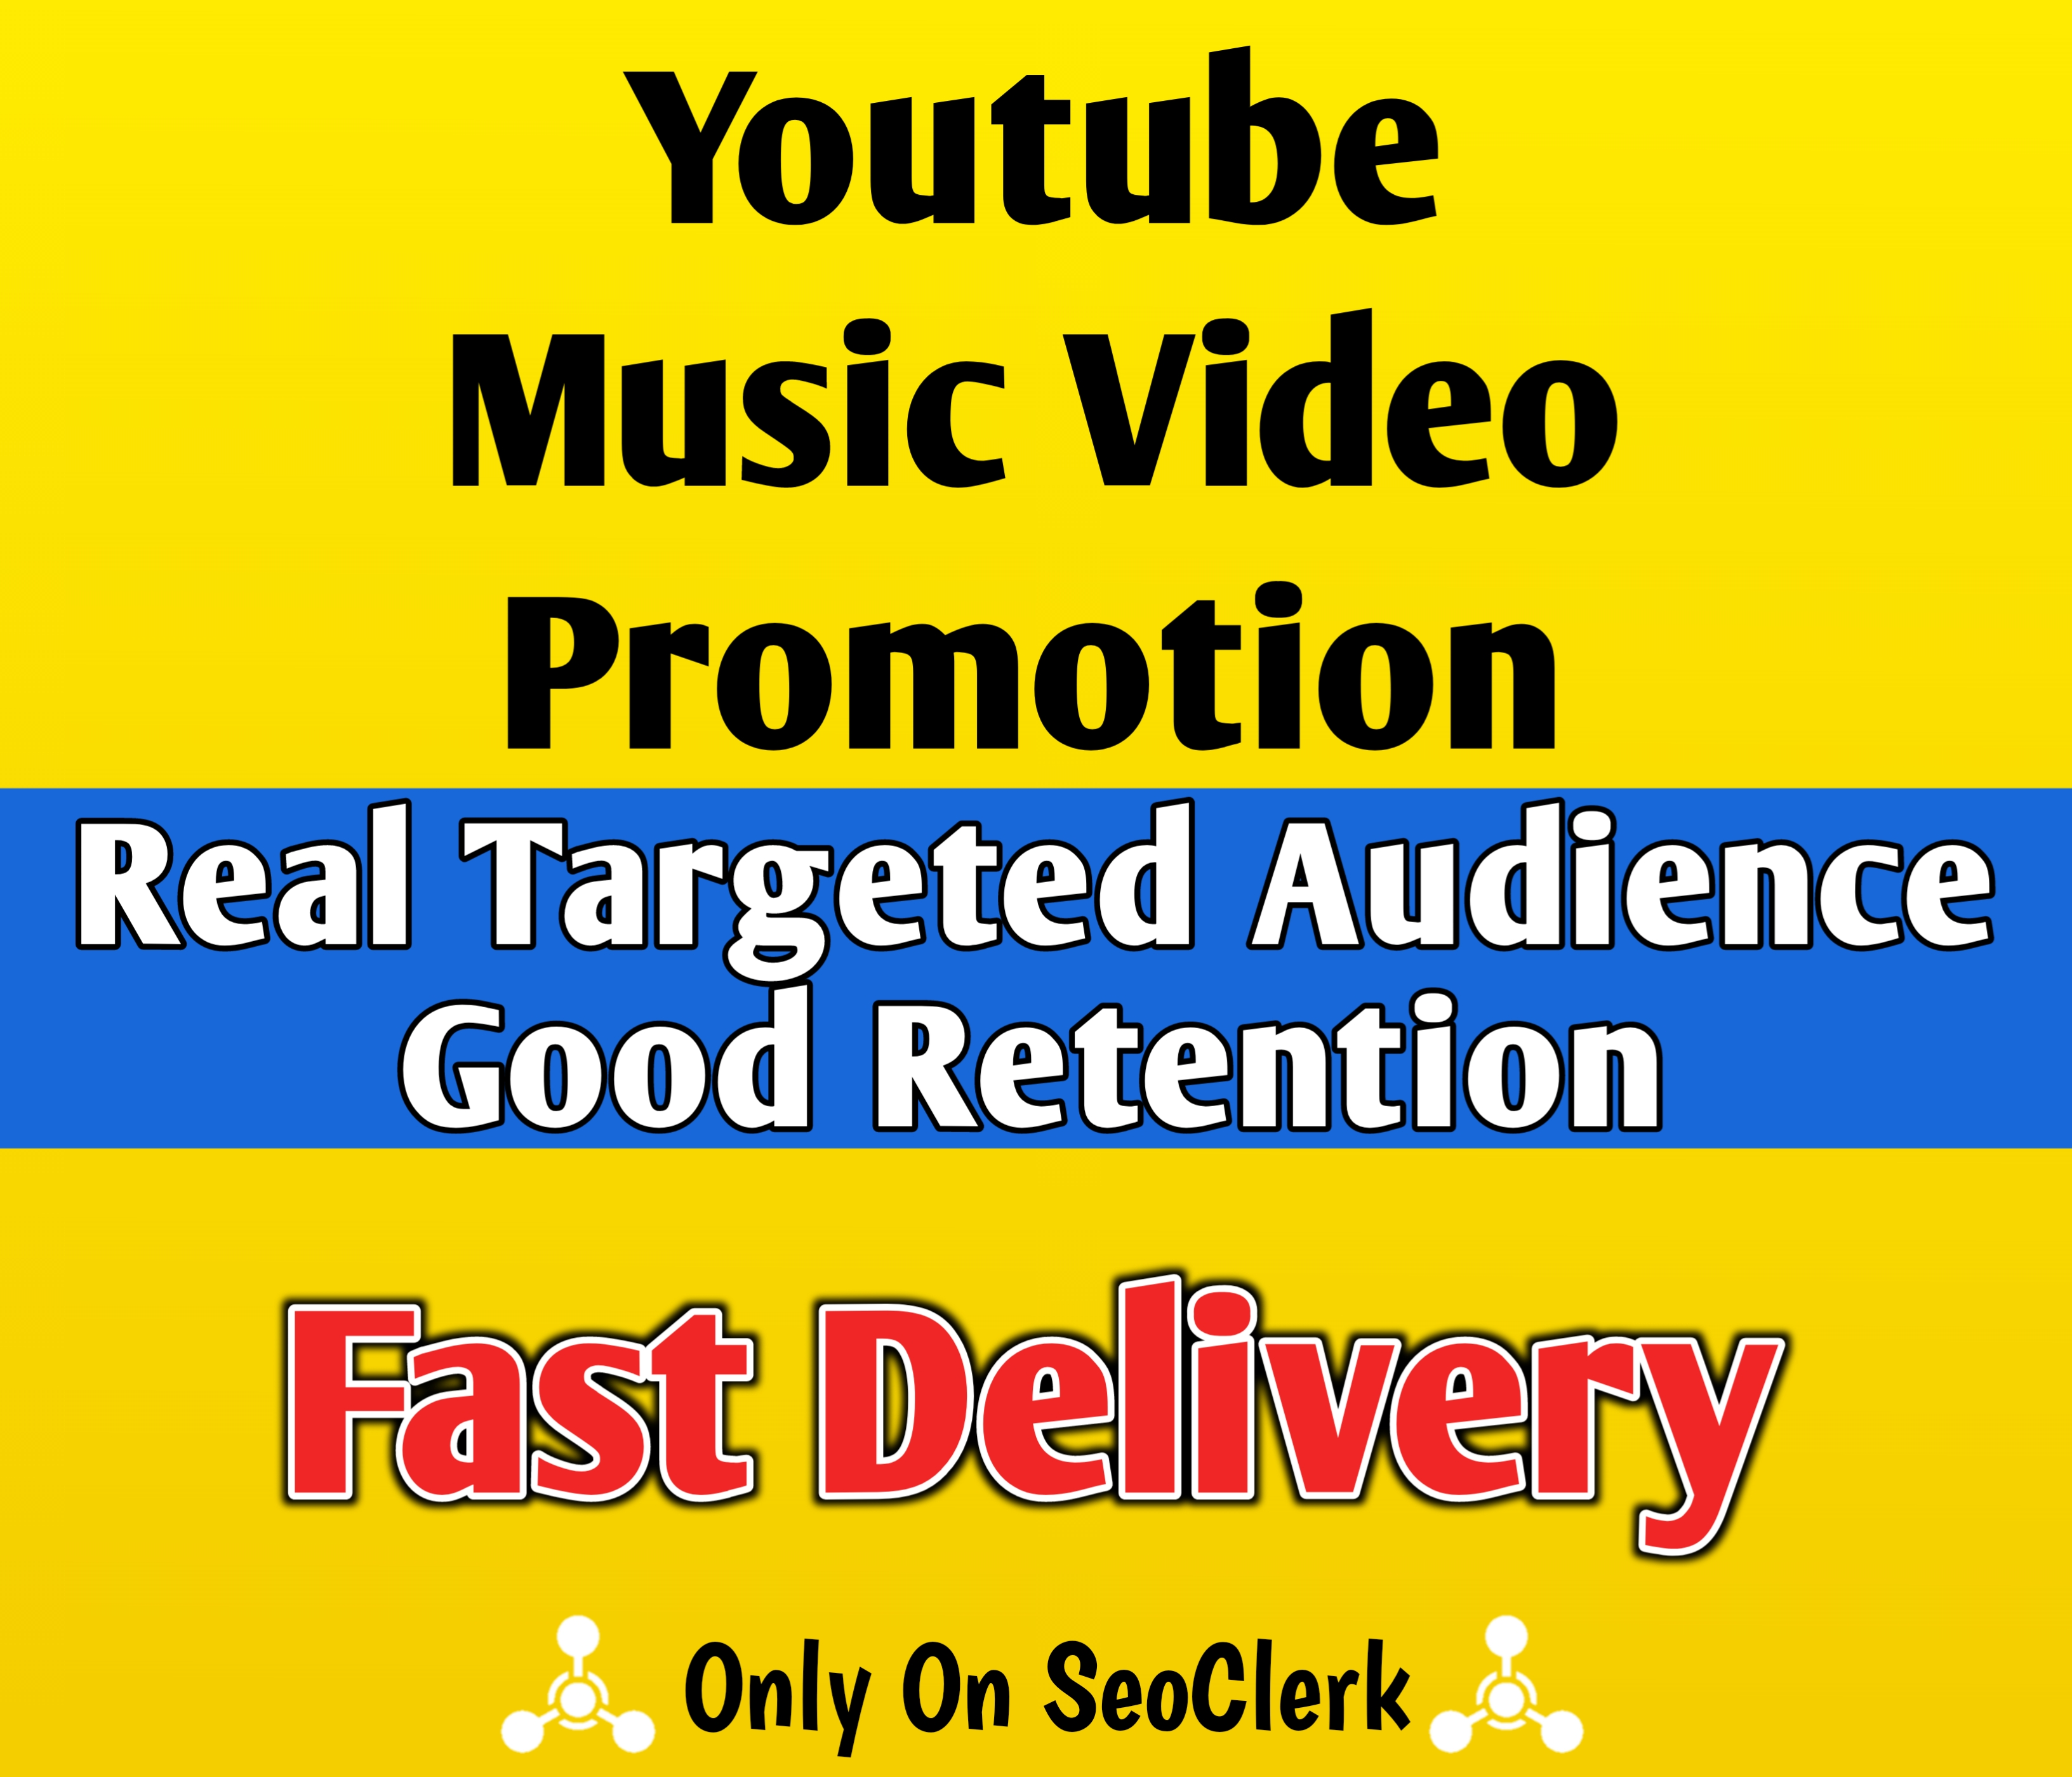 High Retention YouTube Music Video Promotion Marketing With Super Fast Delivery